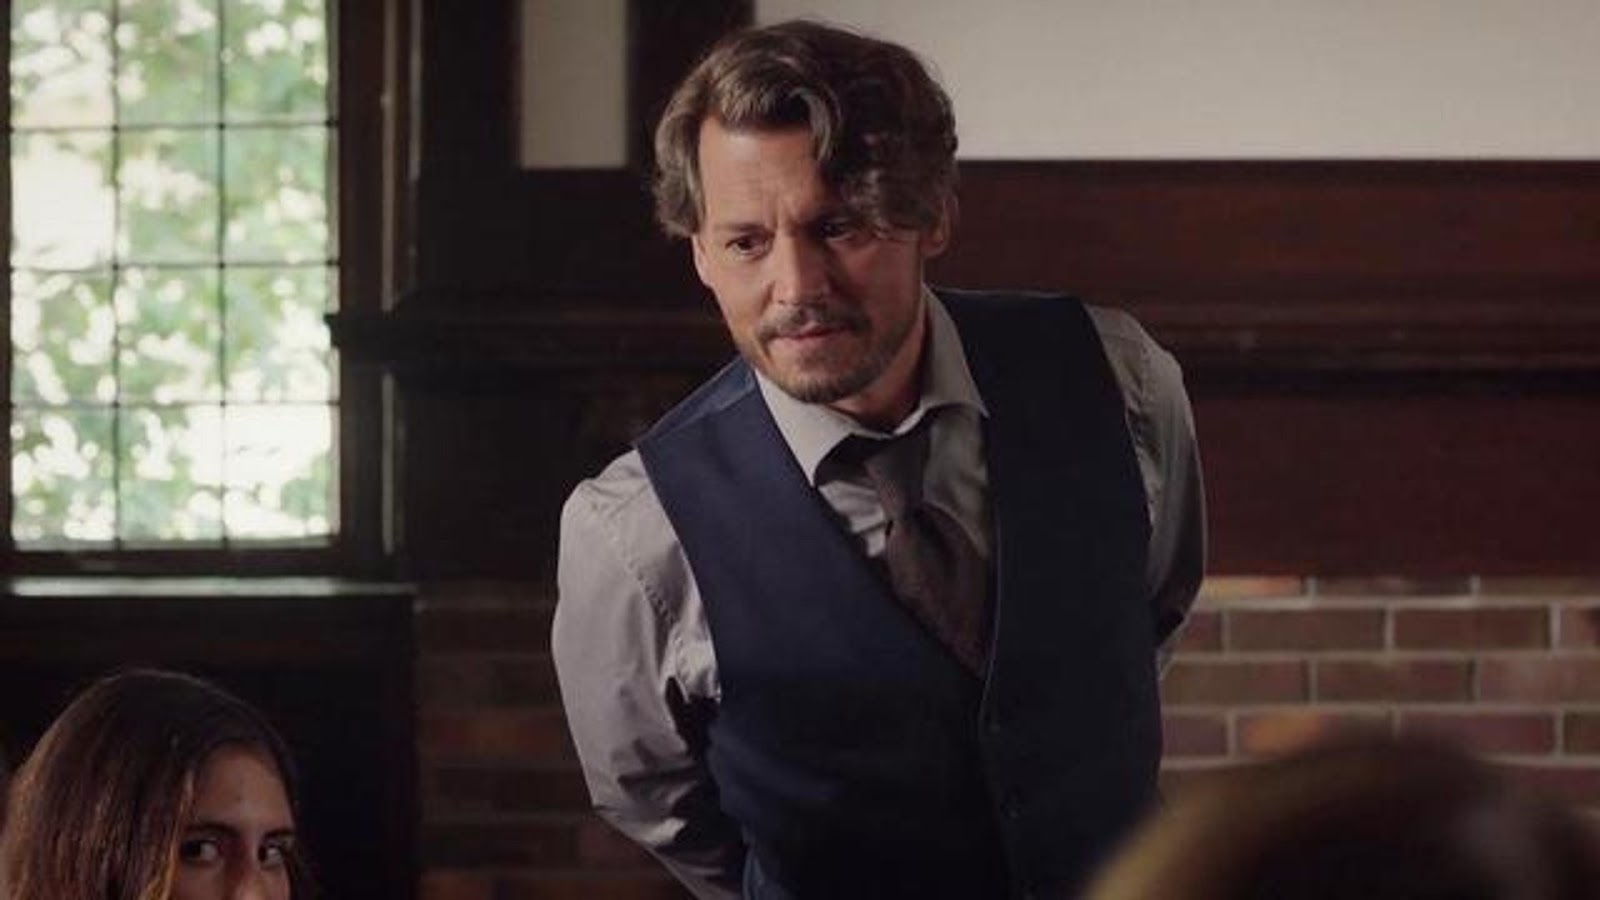 arrivederci-professore-recensione-del-film-johnny-depp-01